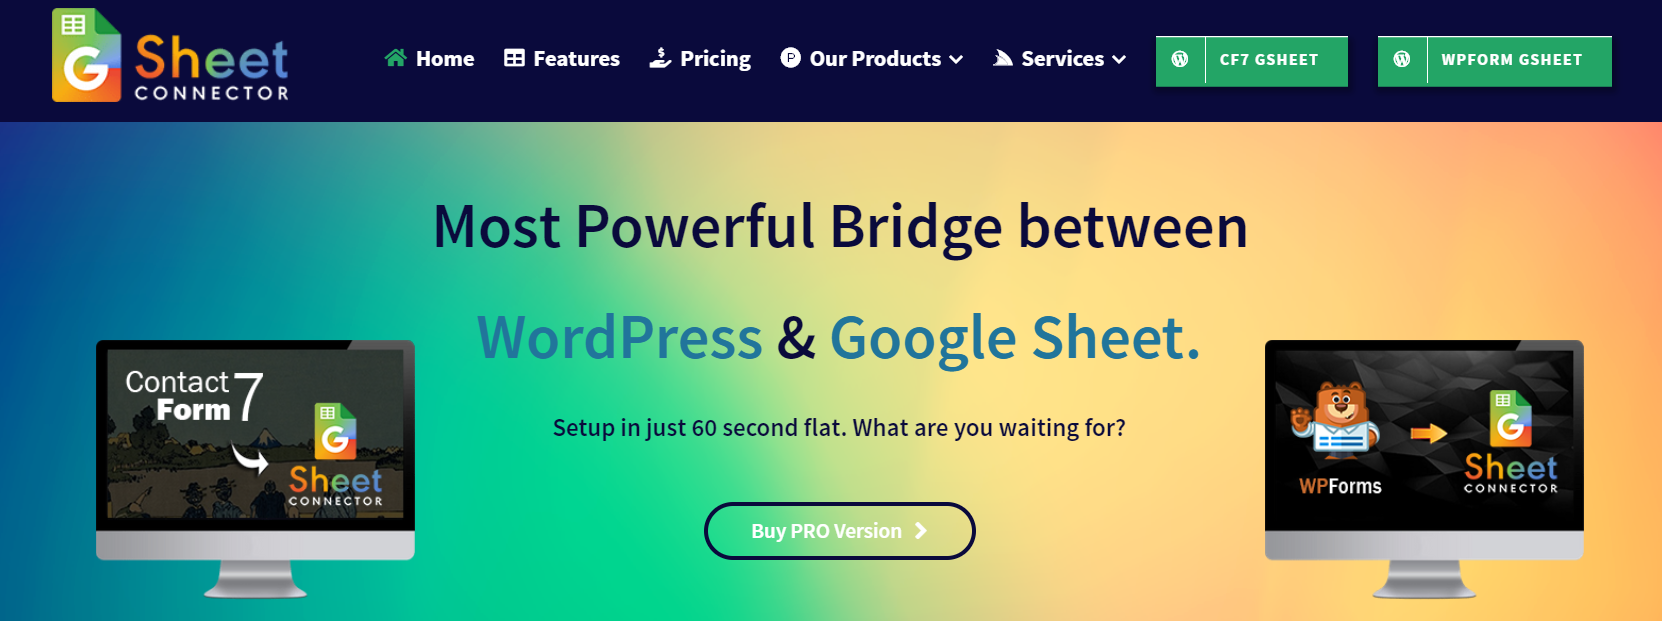 Google Sheet Connector for WordPress – Google Sheet Connector